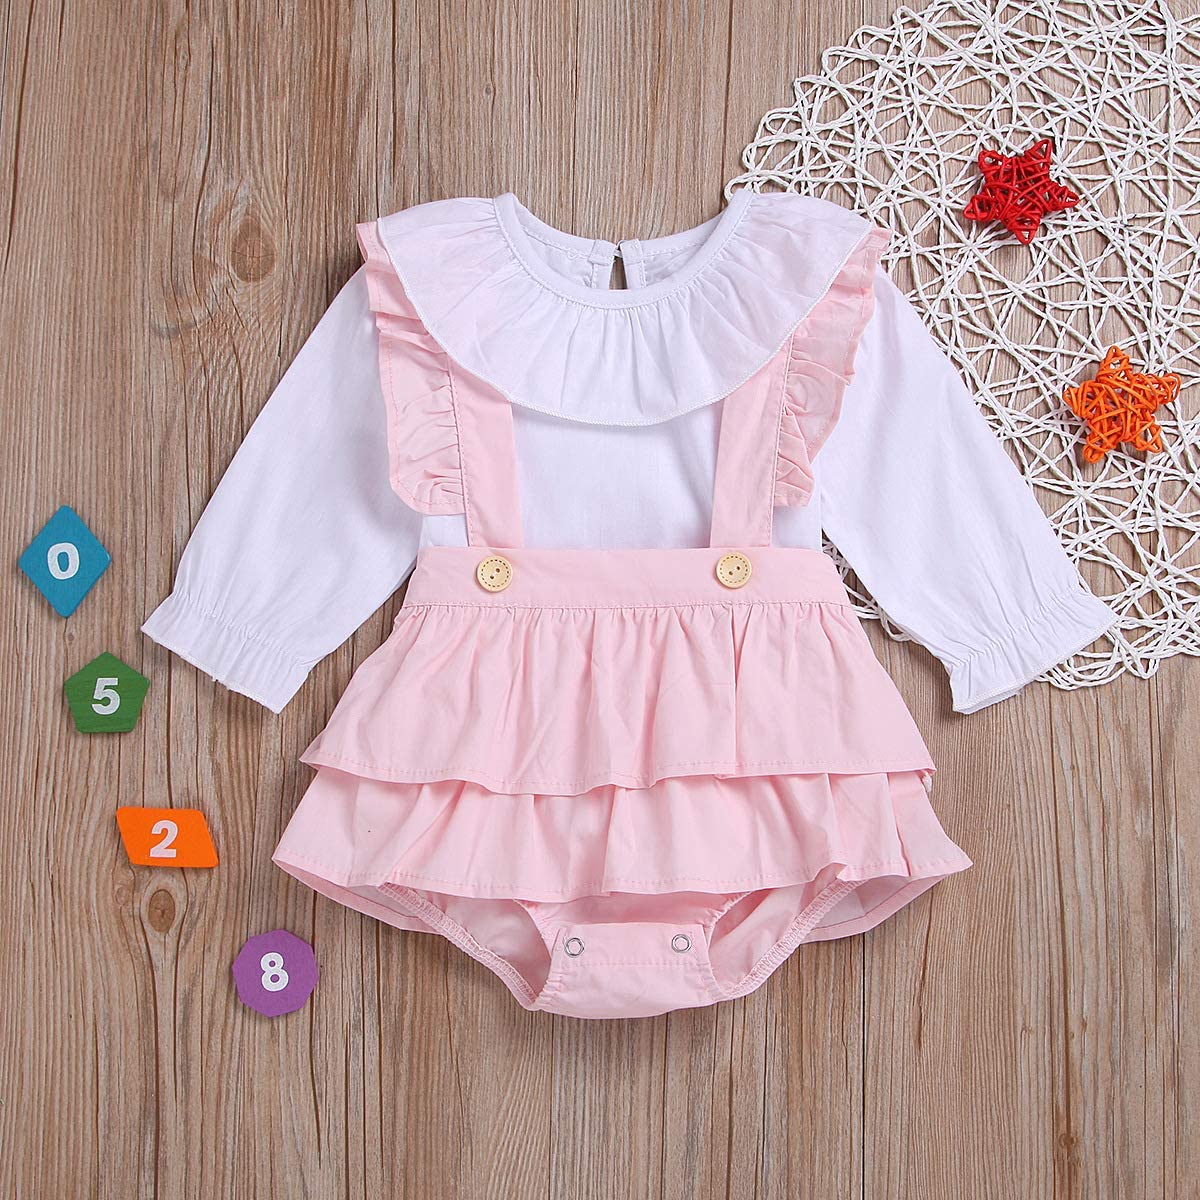 Independence Day Toddler Baby Girl Outfits Star Ruffle Sleeve T-Shirt Tops Strap Suspender Skirt 2PCS Overalls Clothes Set